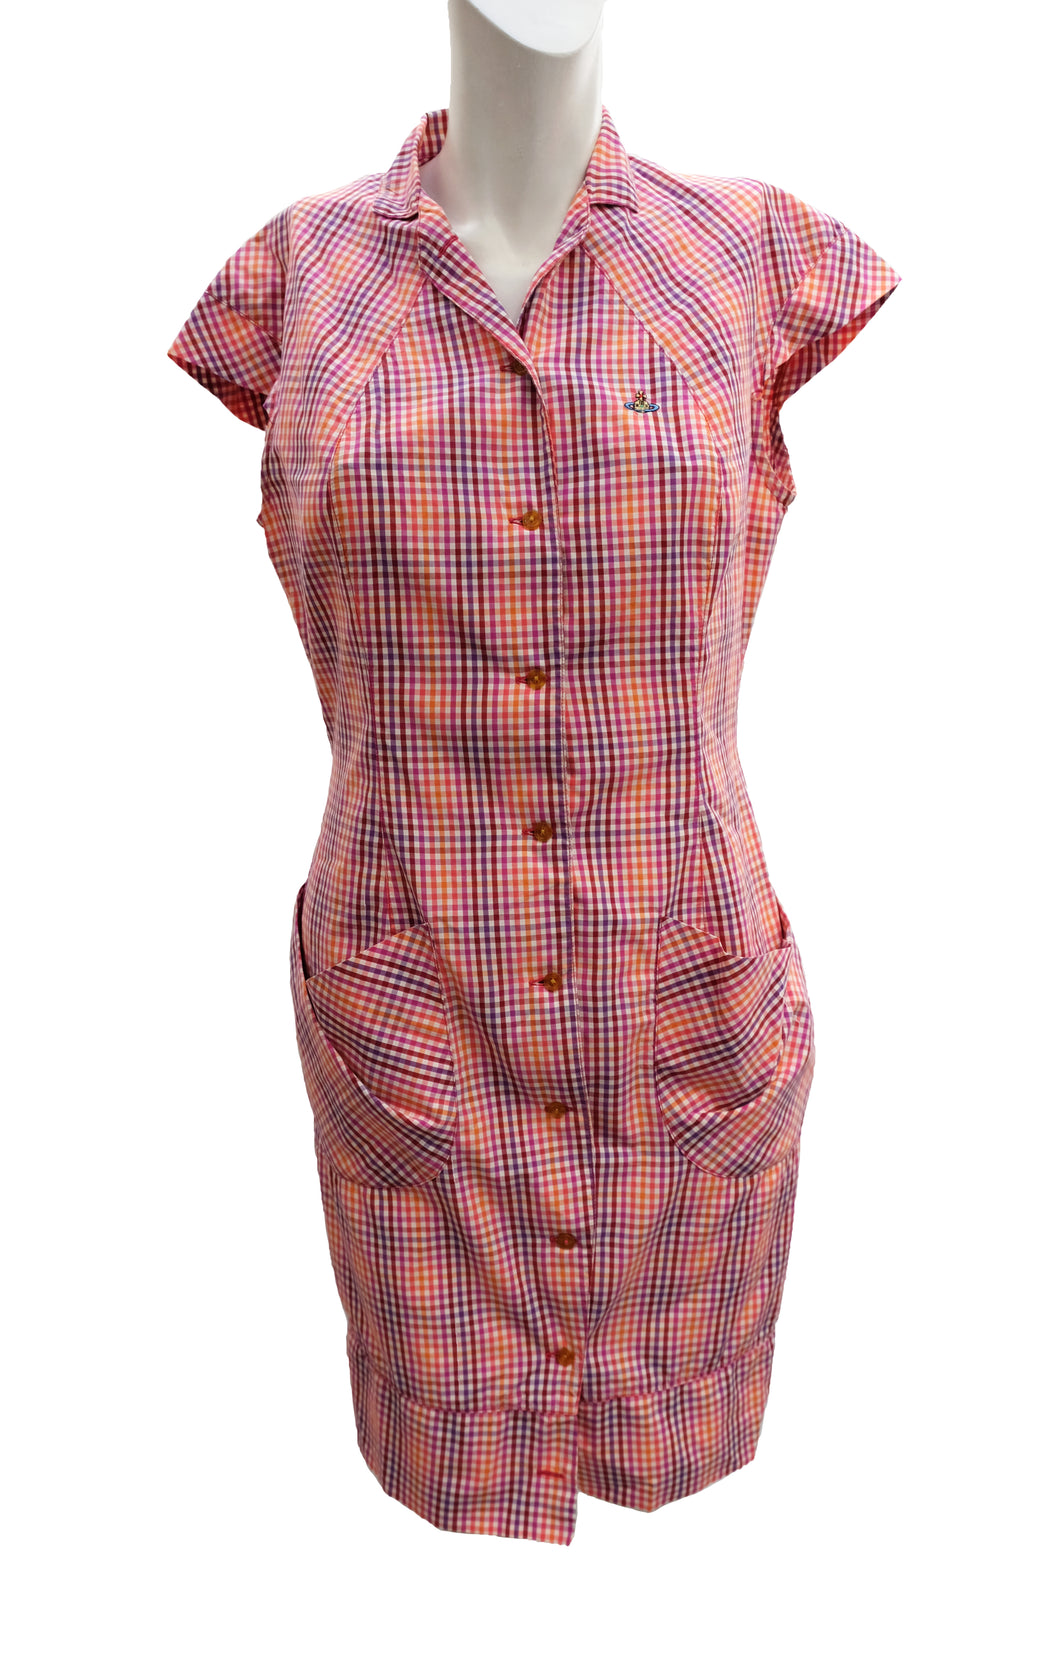 Vintage Vivienne Westwood Checked Day Dress, UK10-12